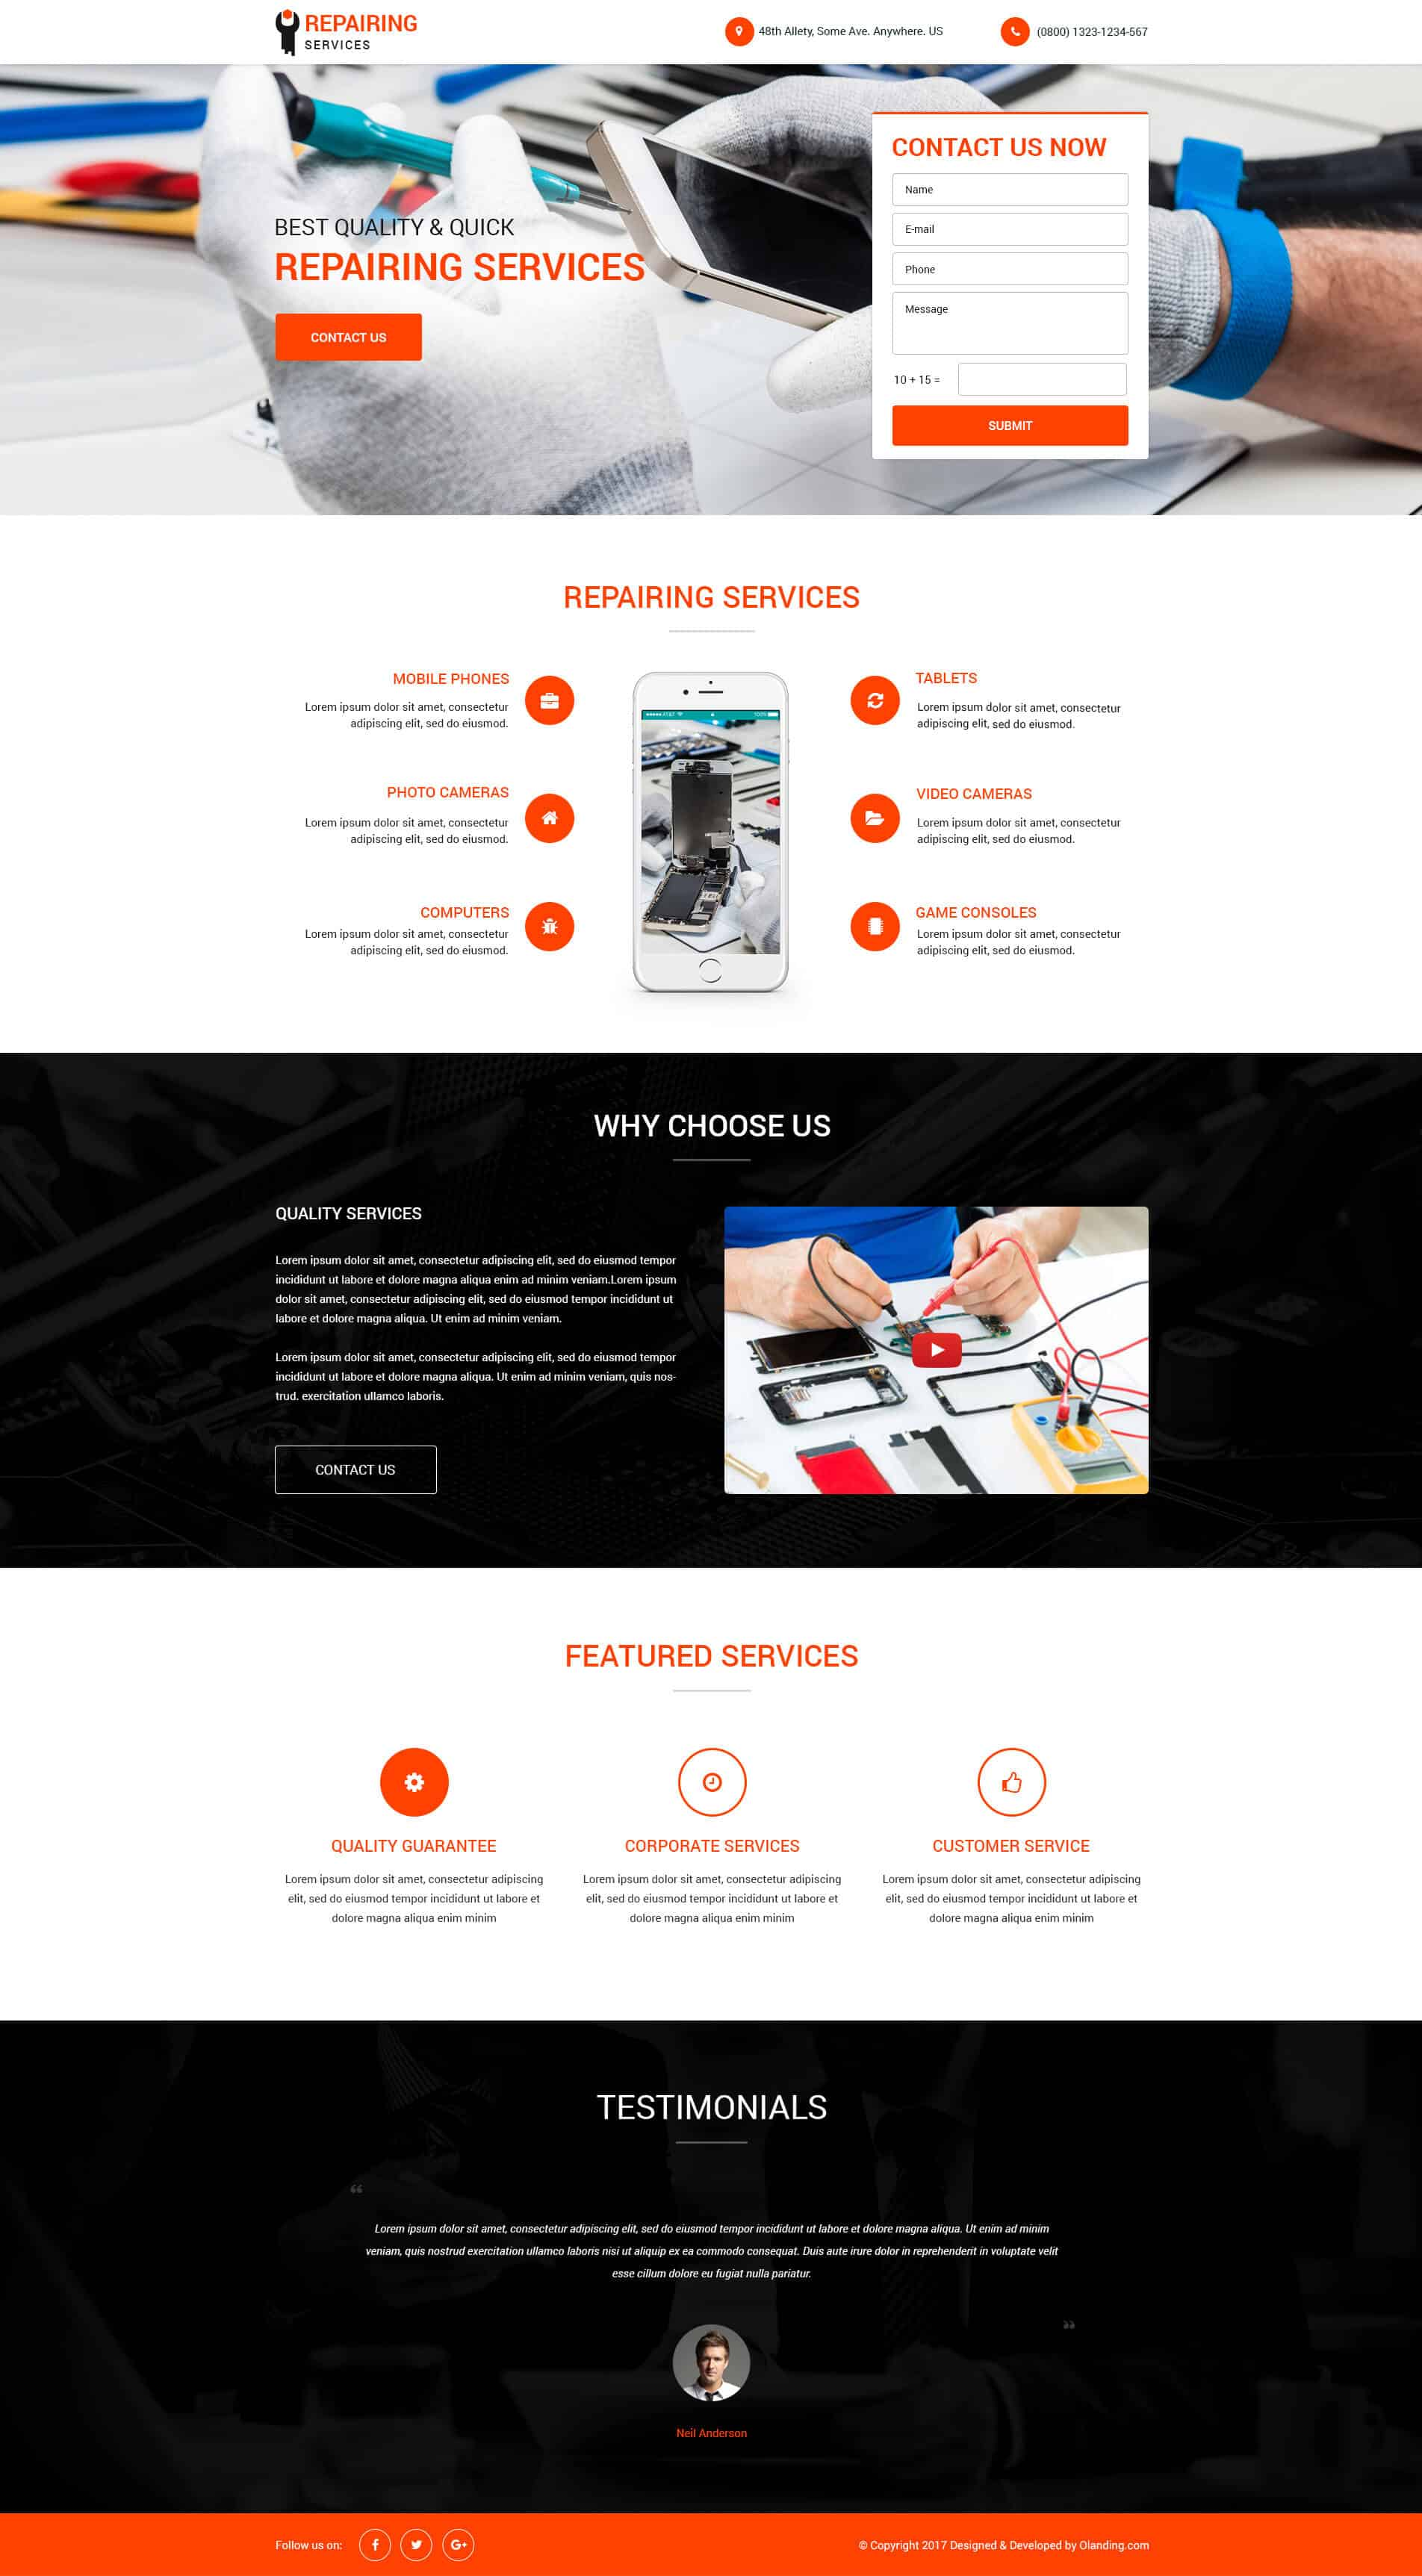 mobile repair services responsive landing page design template to capture leads online olanding. Black Bedroom Furniture Sets. Home Design Ideas